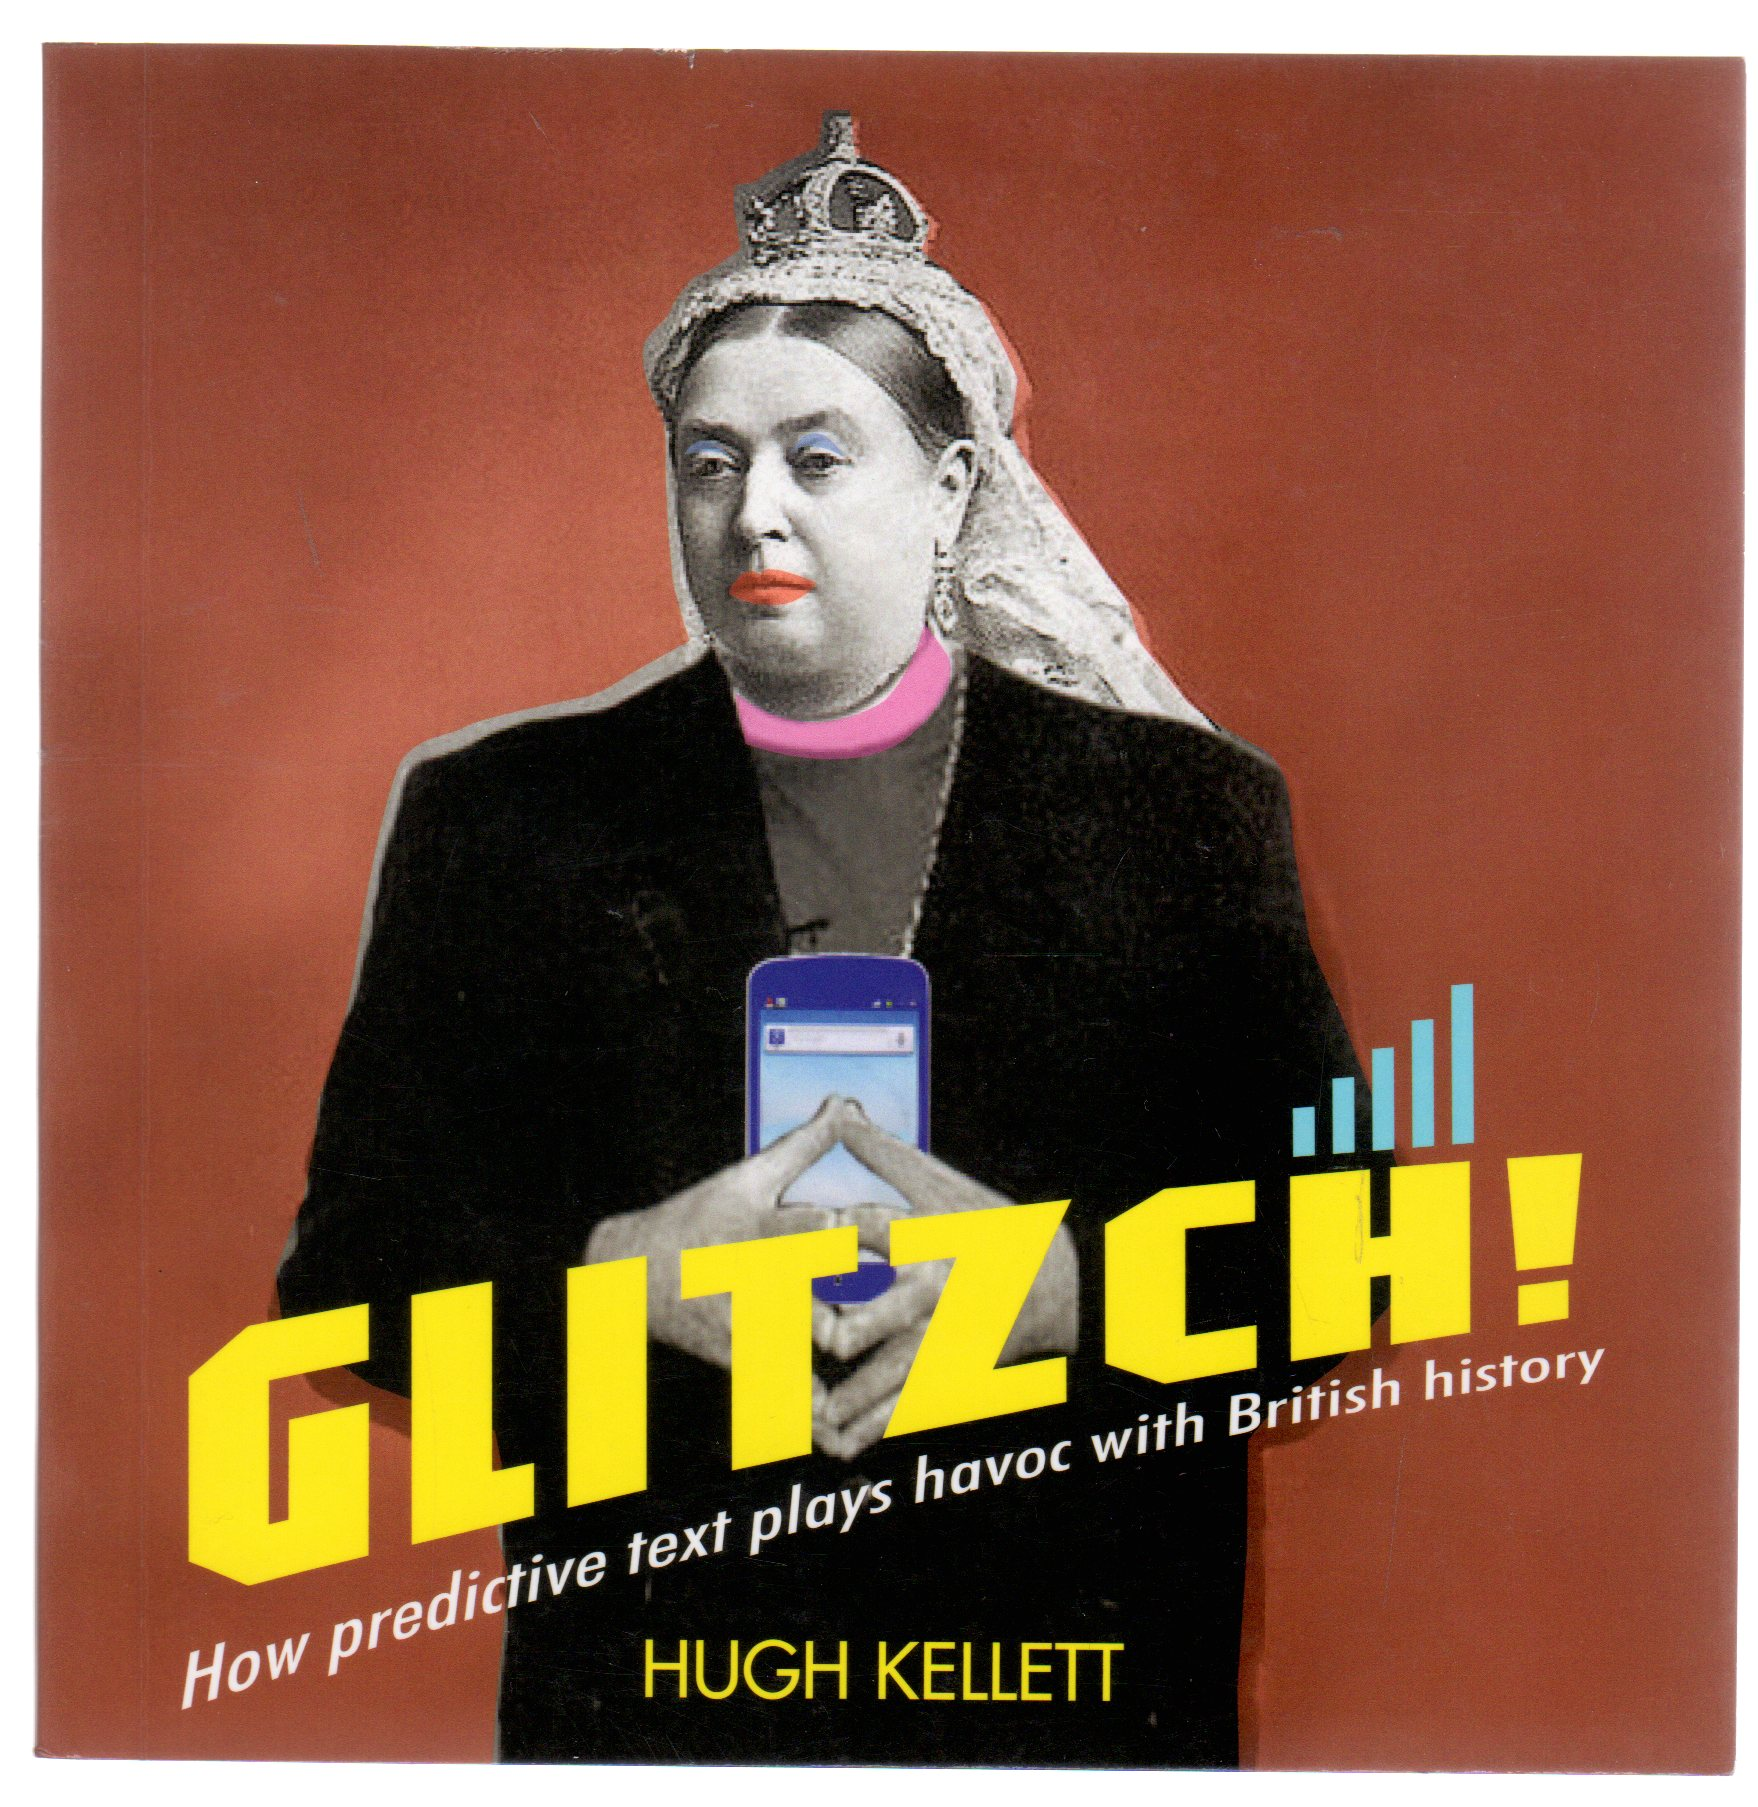 Image for Glitzch!: How Predictive Text Plays Havoc with British History (SIGNED COPY)